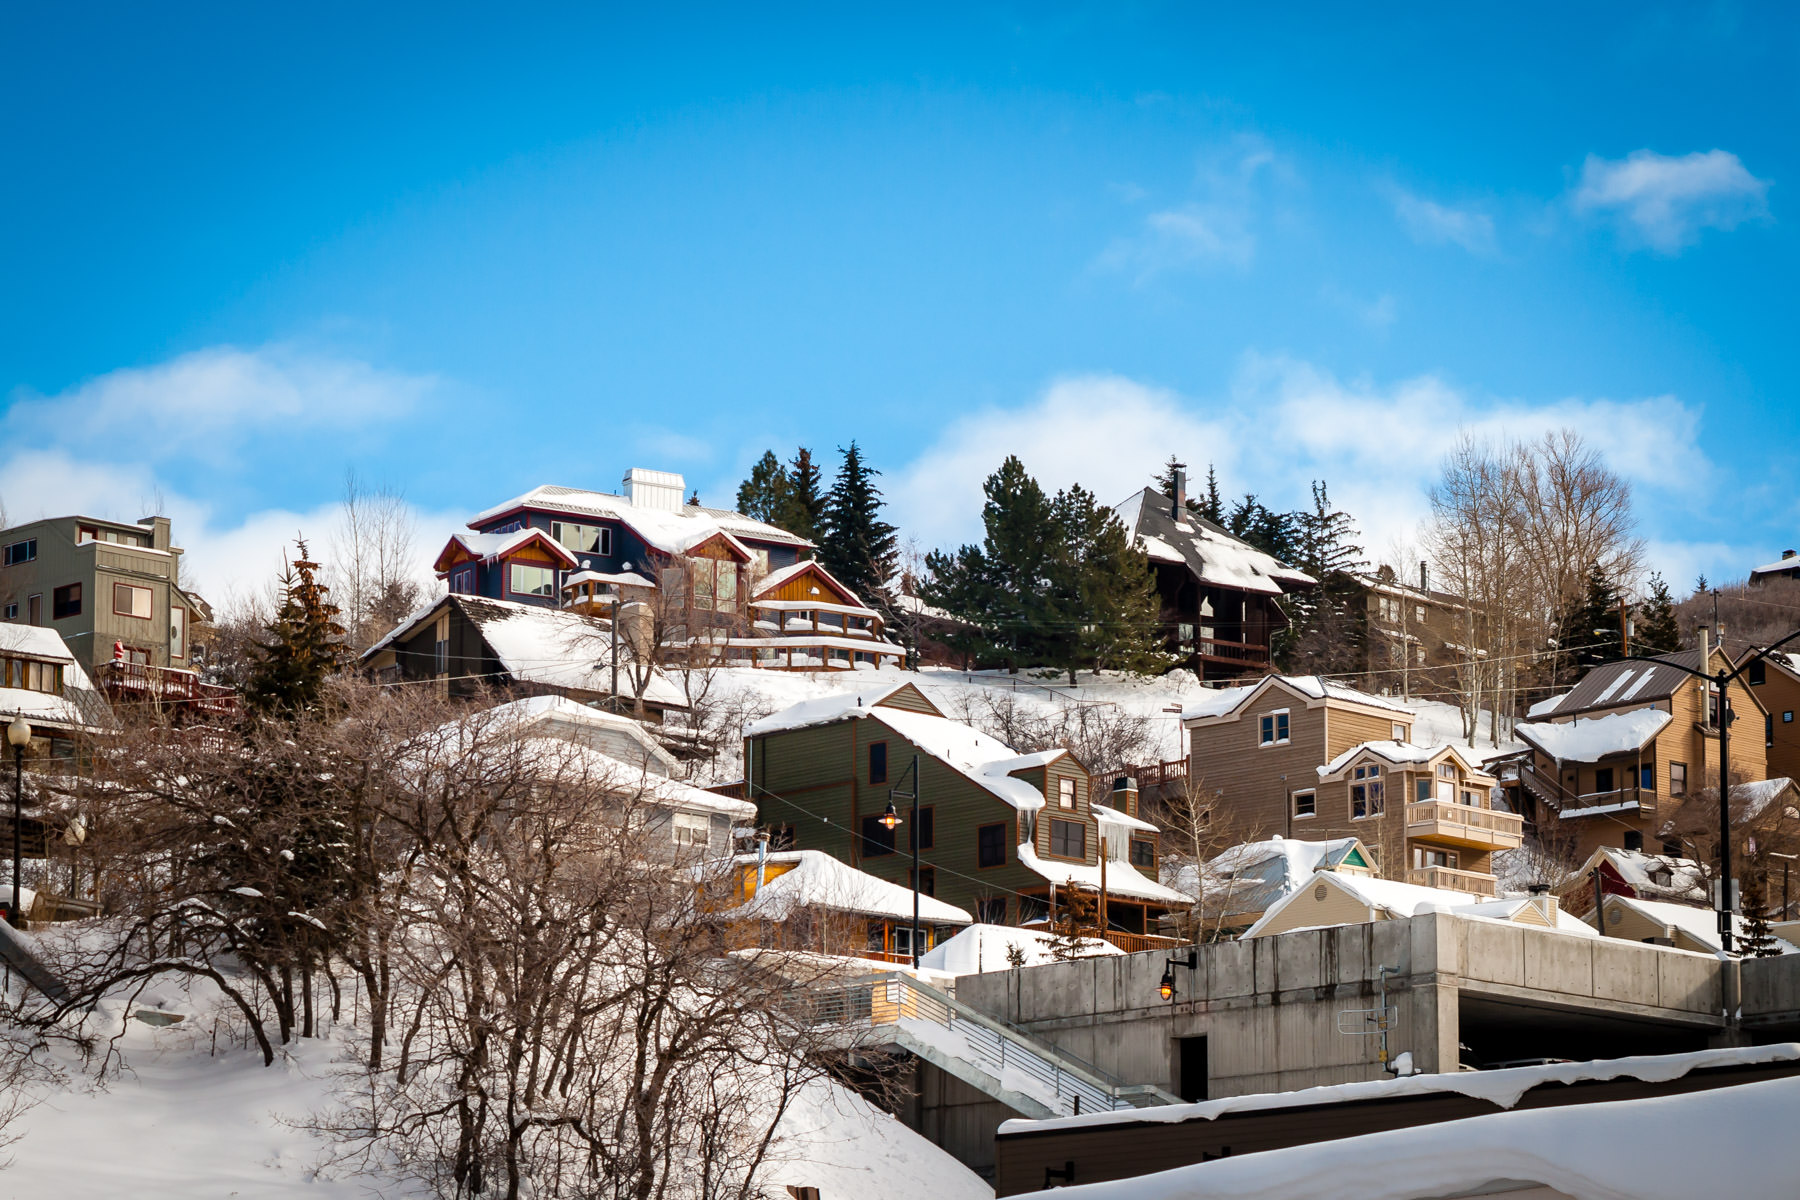 Snow-covered houses in Park City, Utah.